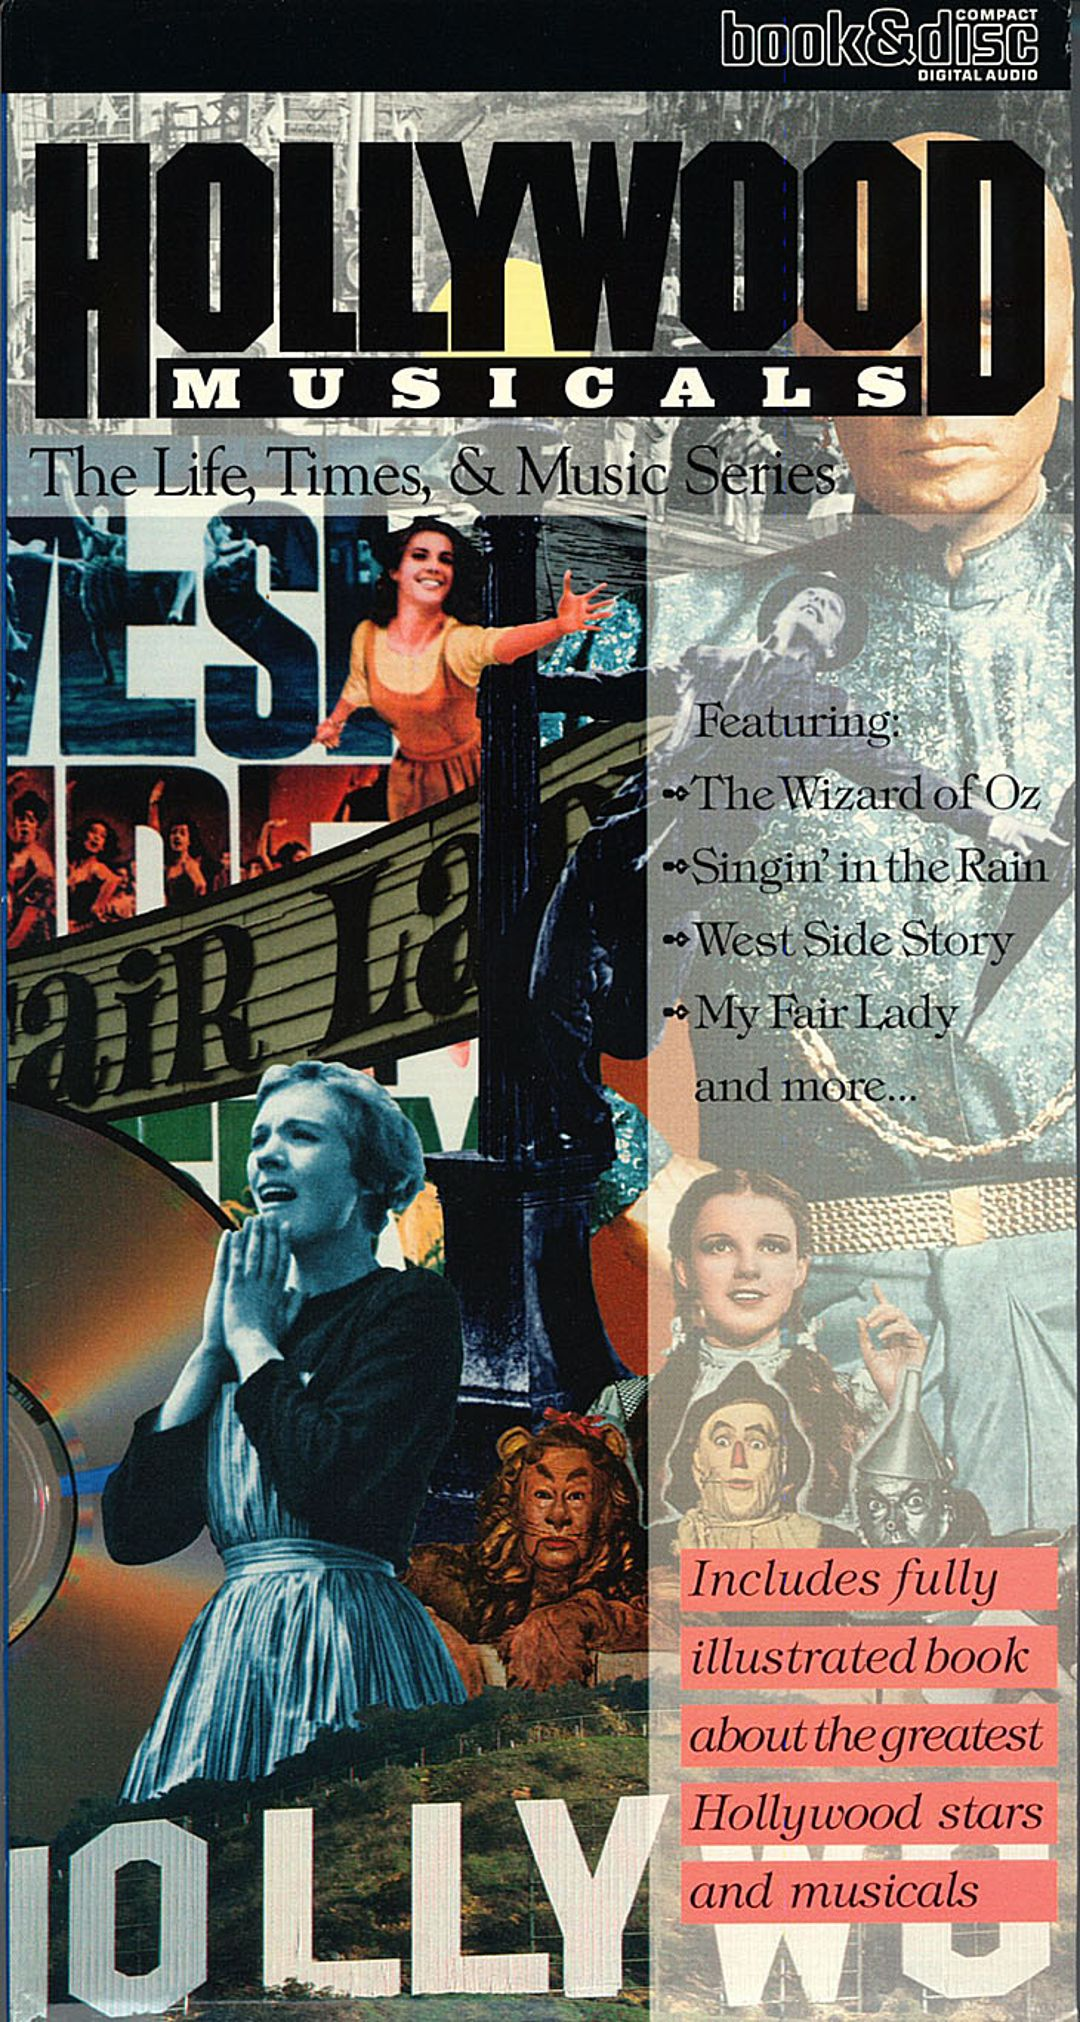 Hollywood Musicals [Life Times & Music]